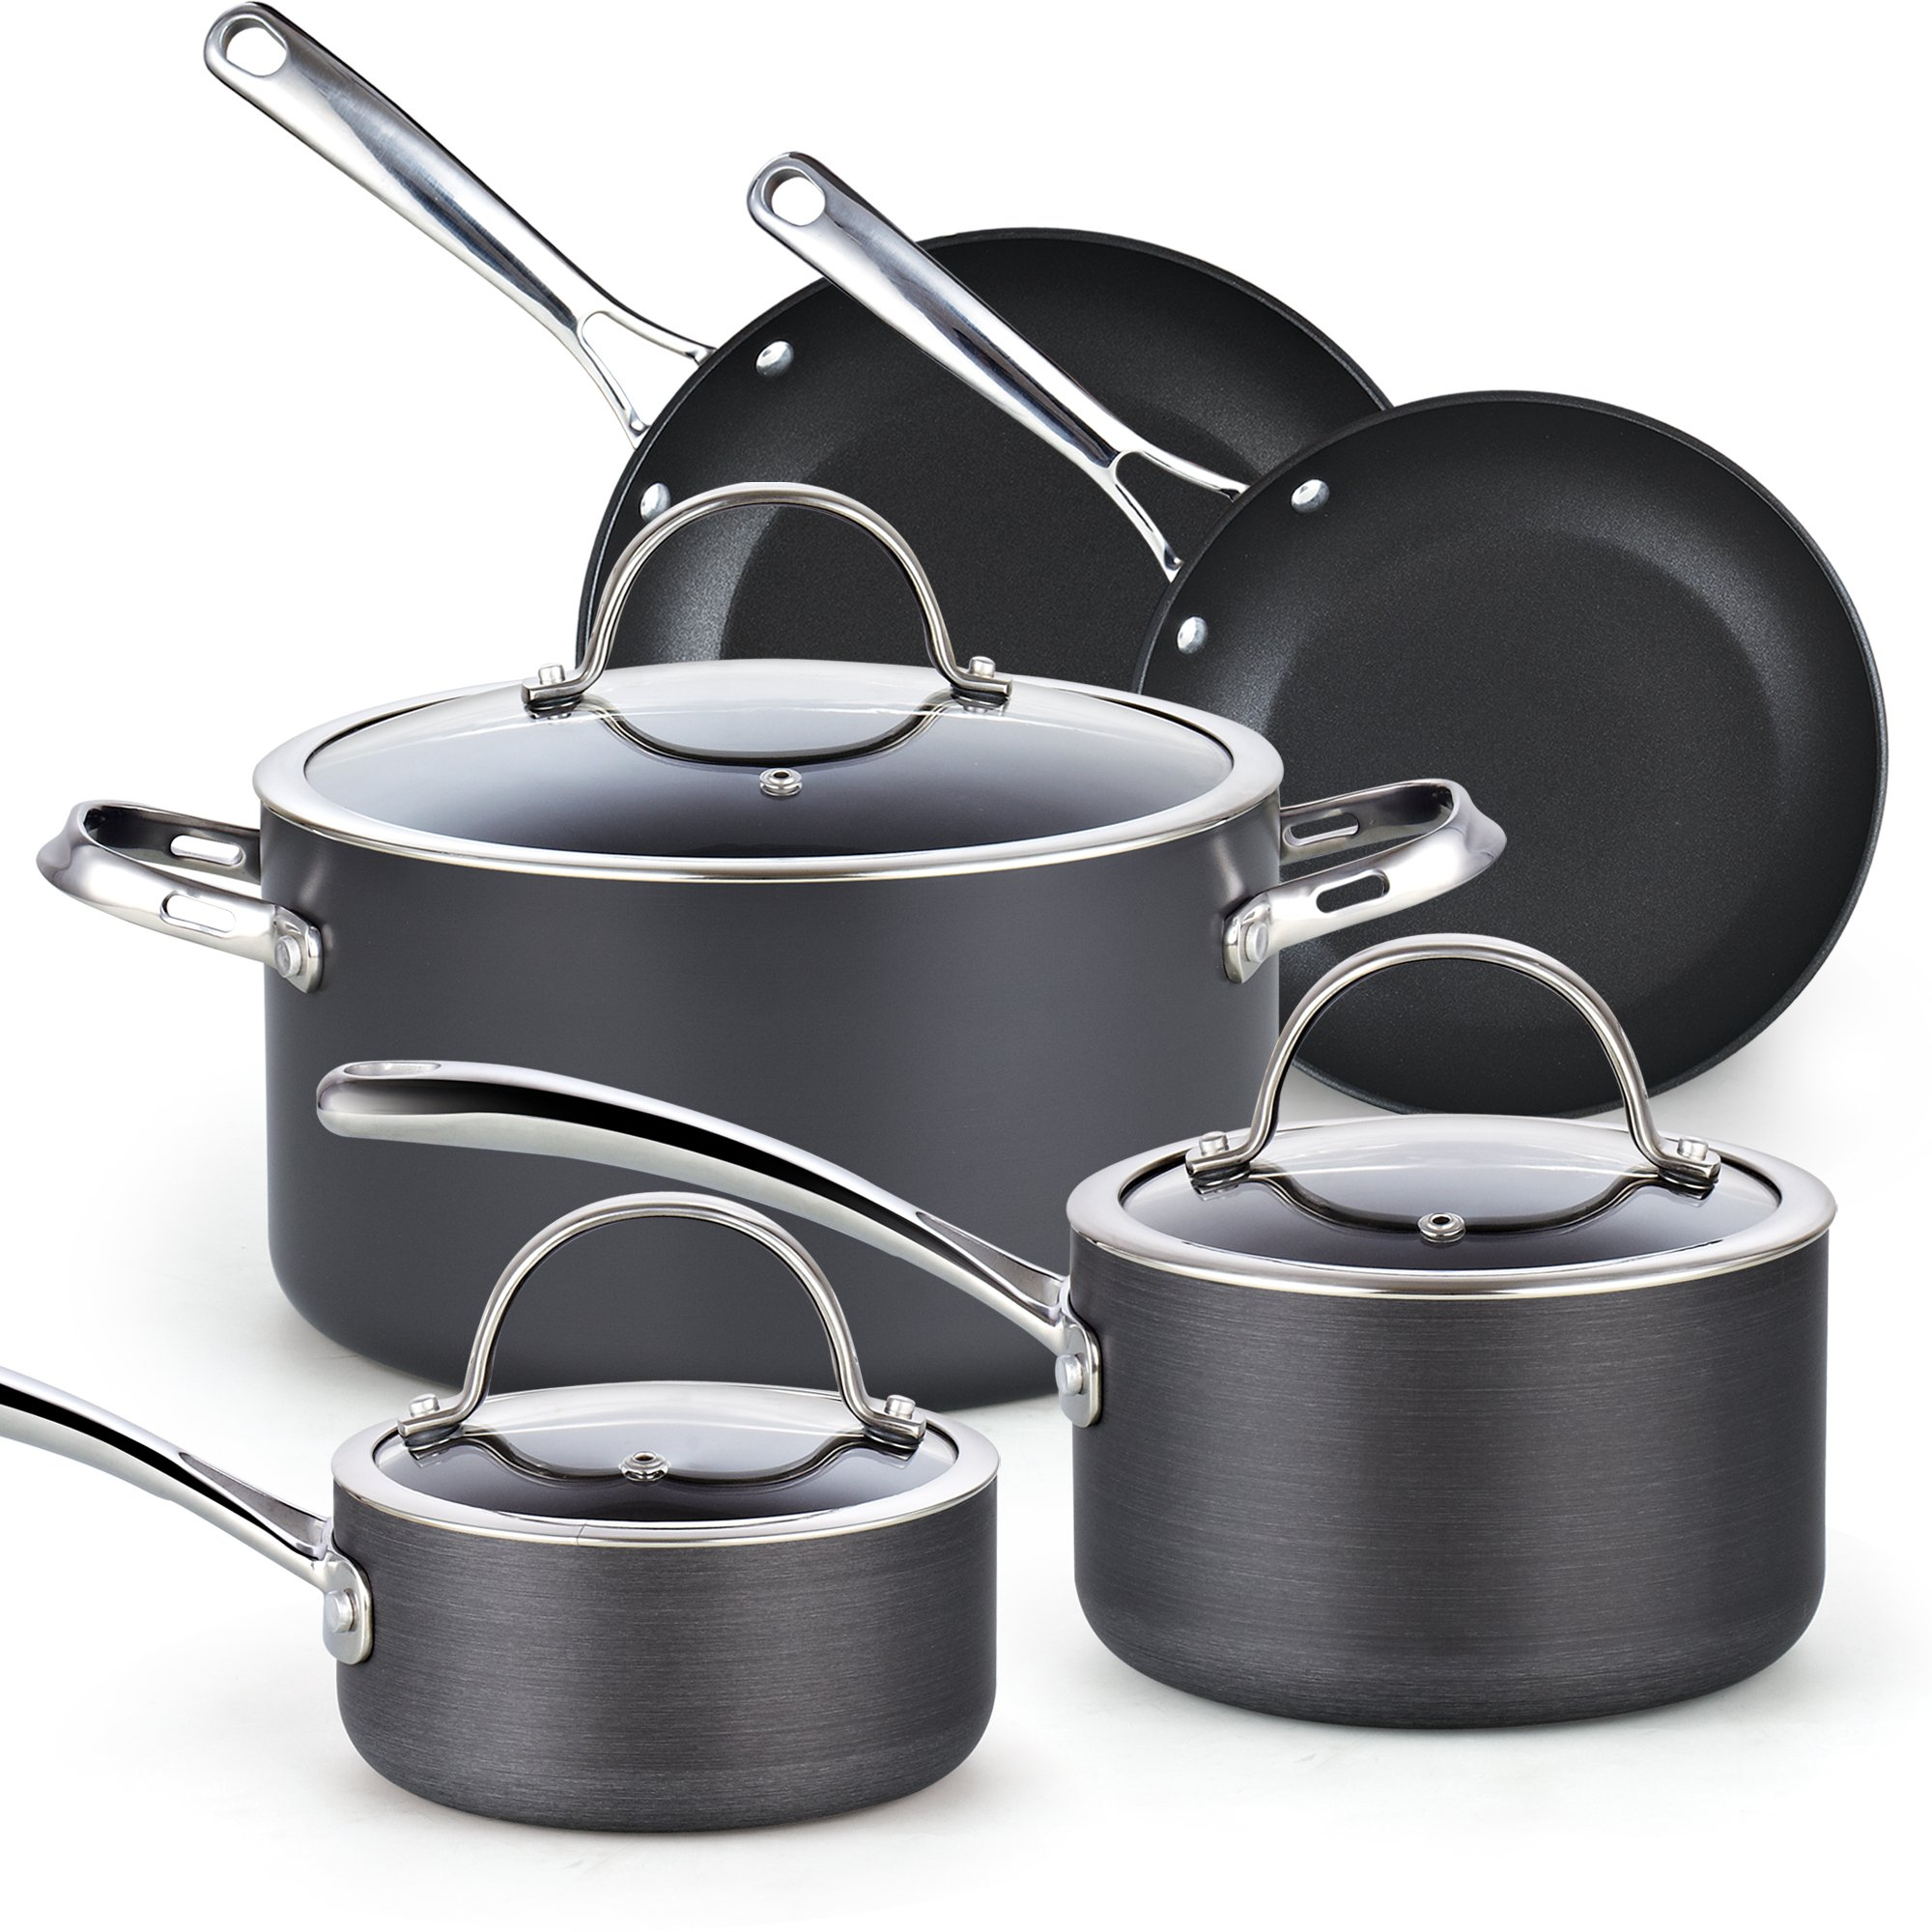 Cooks Standard 02487 Nonstick Hard Anodized Cookware Set, Black